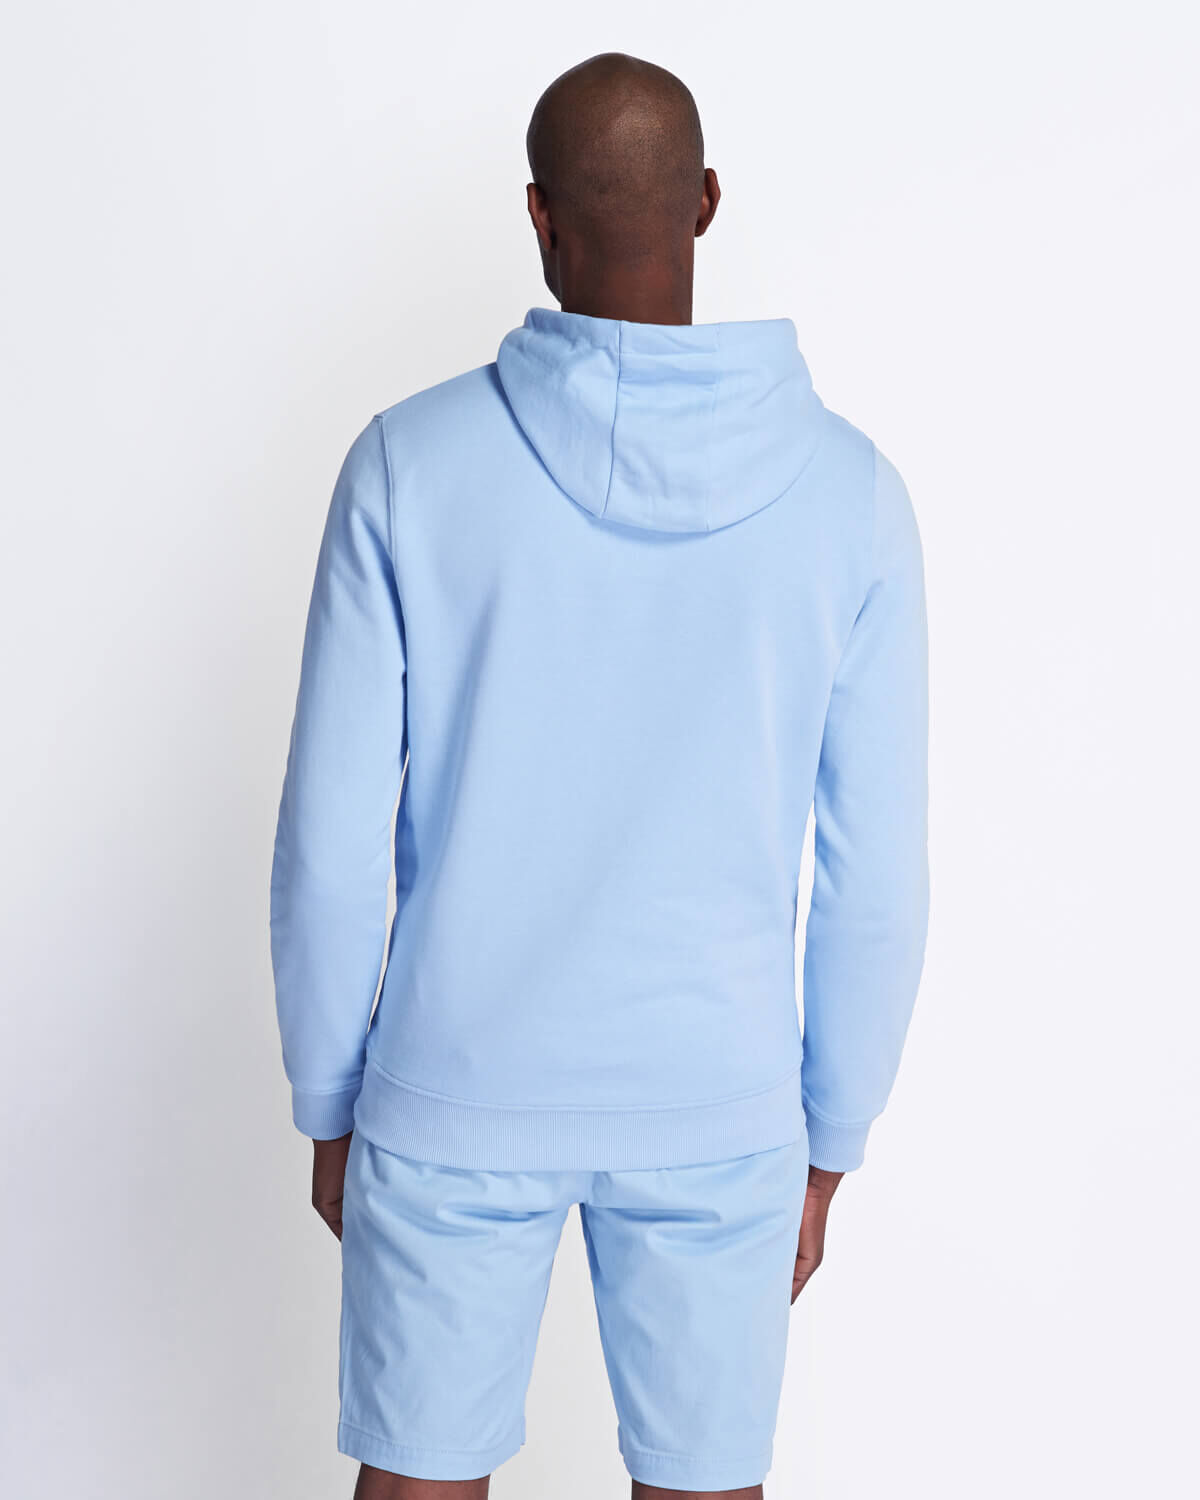 Lyle-and-Scott-Mens-Pullover-Hoodie-Cotton thumbnail 43